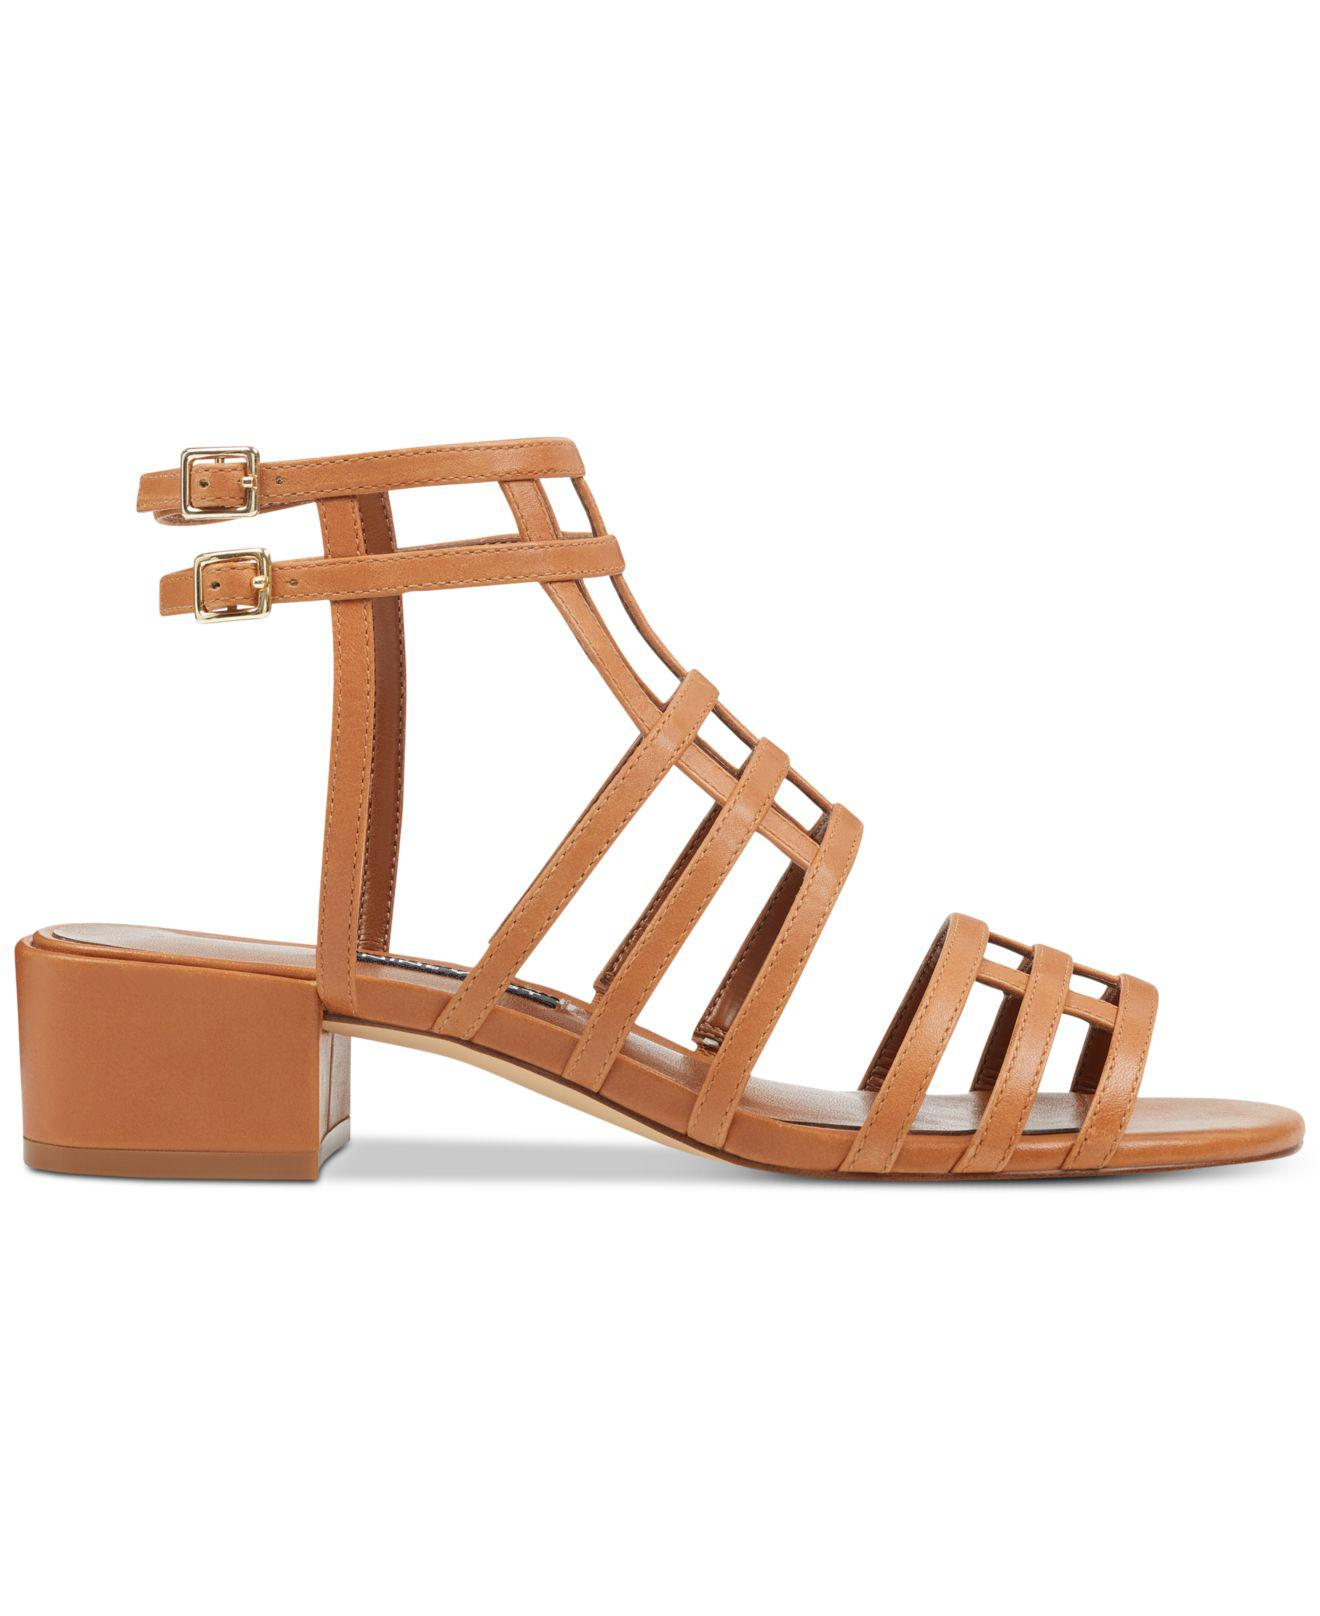 87365224a91a Gallery. Previously sold at  Macy s · Women s Gladiator Sandals ...